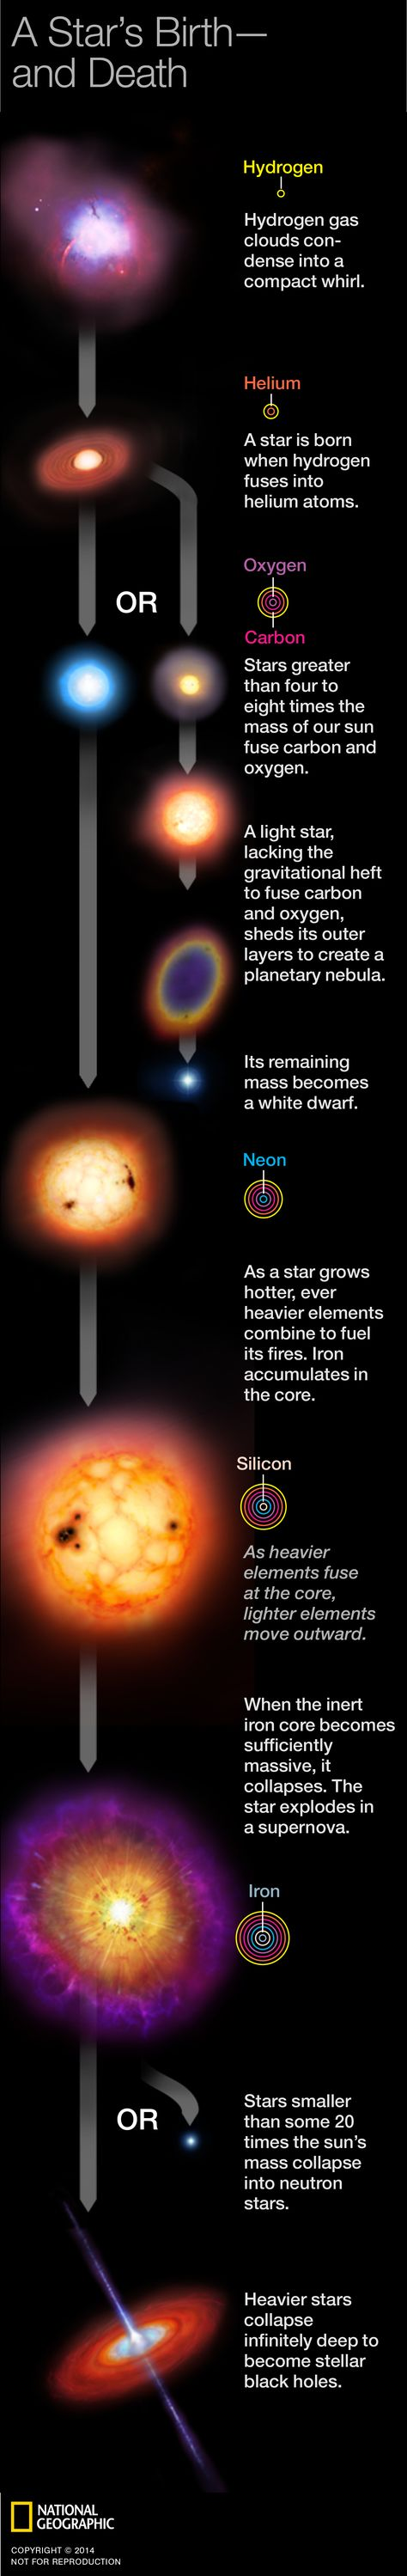 A STAR'S BIRTH AND DEATH